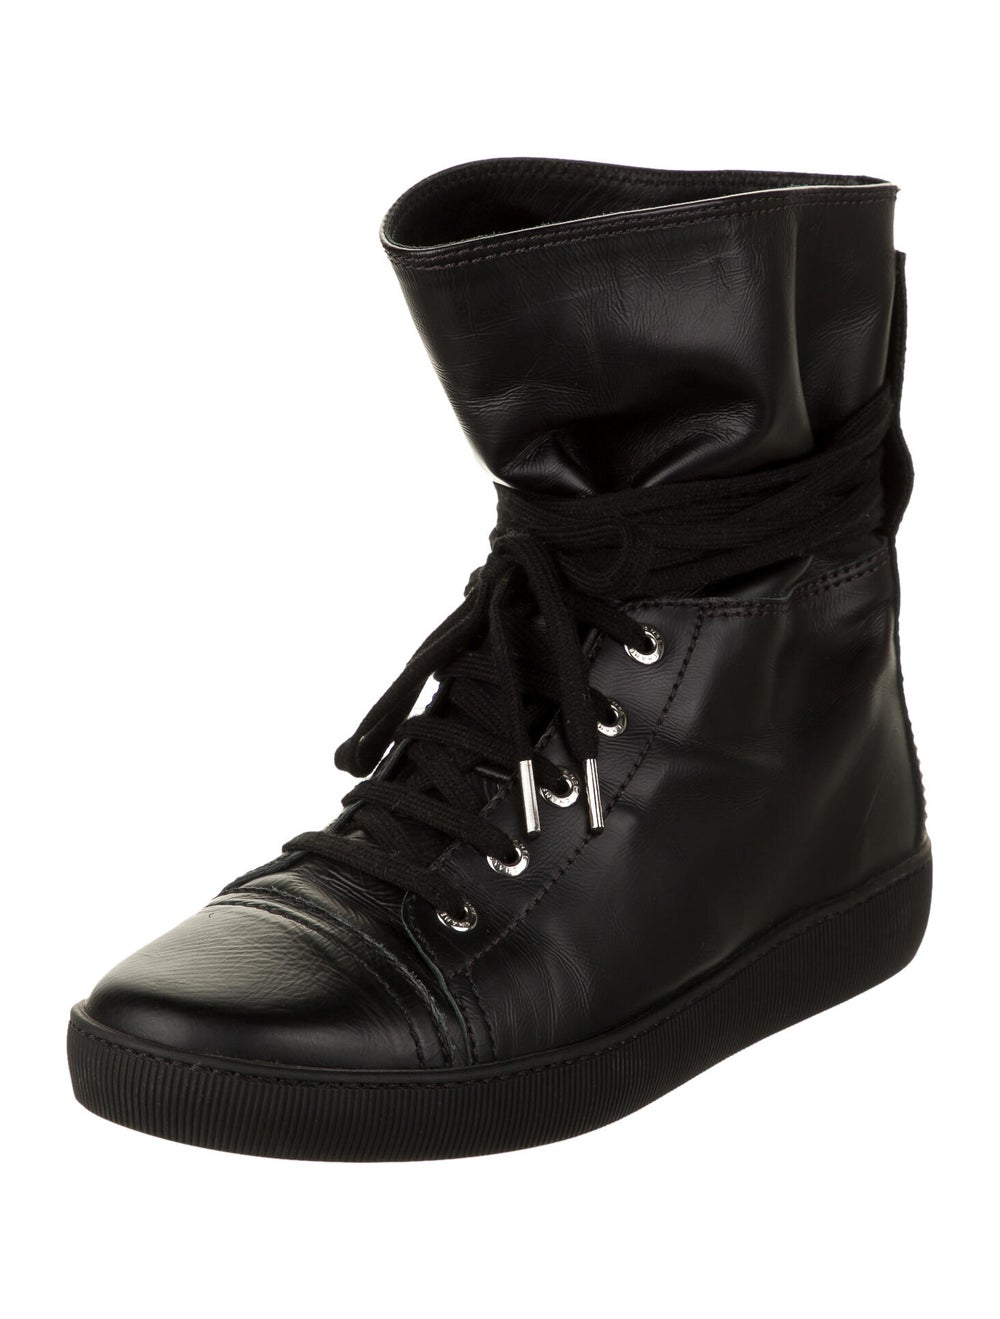 Chanel Leather Sneakers Wedge Sneakers Black - image 2